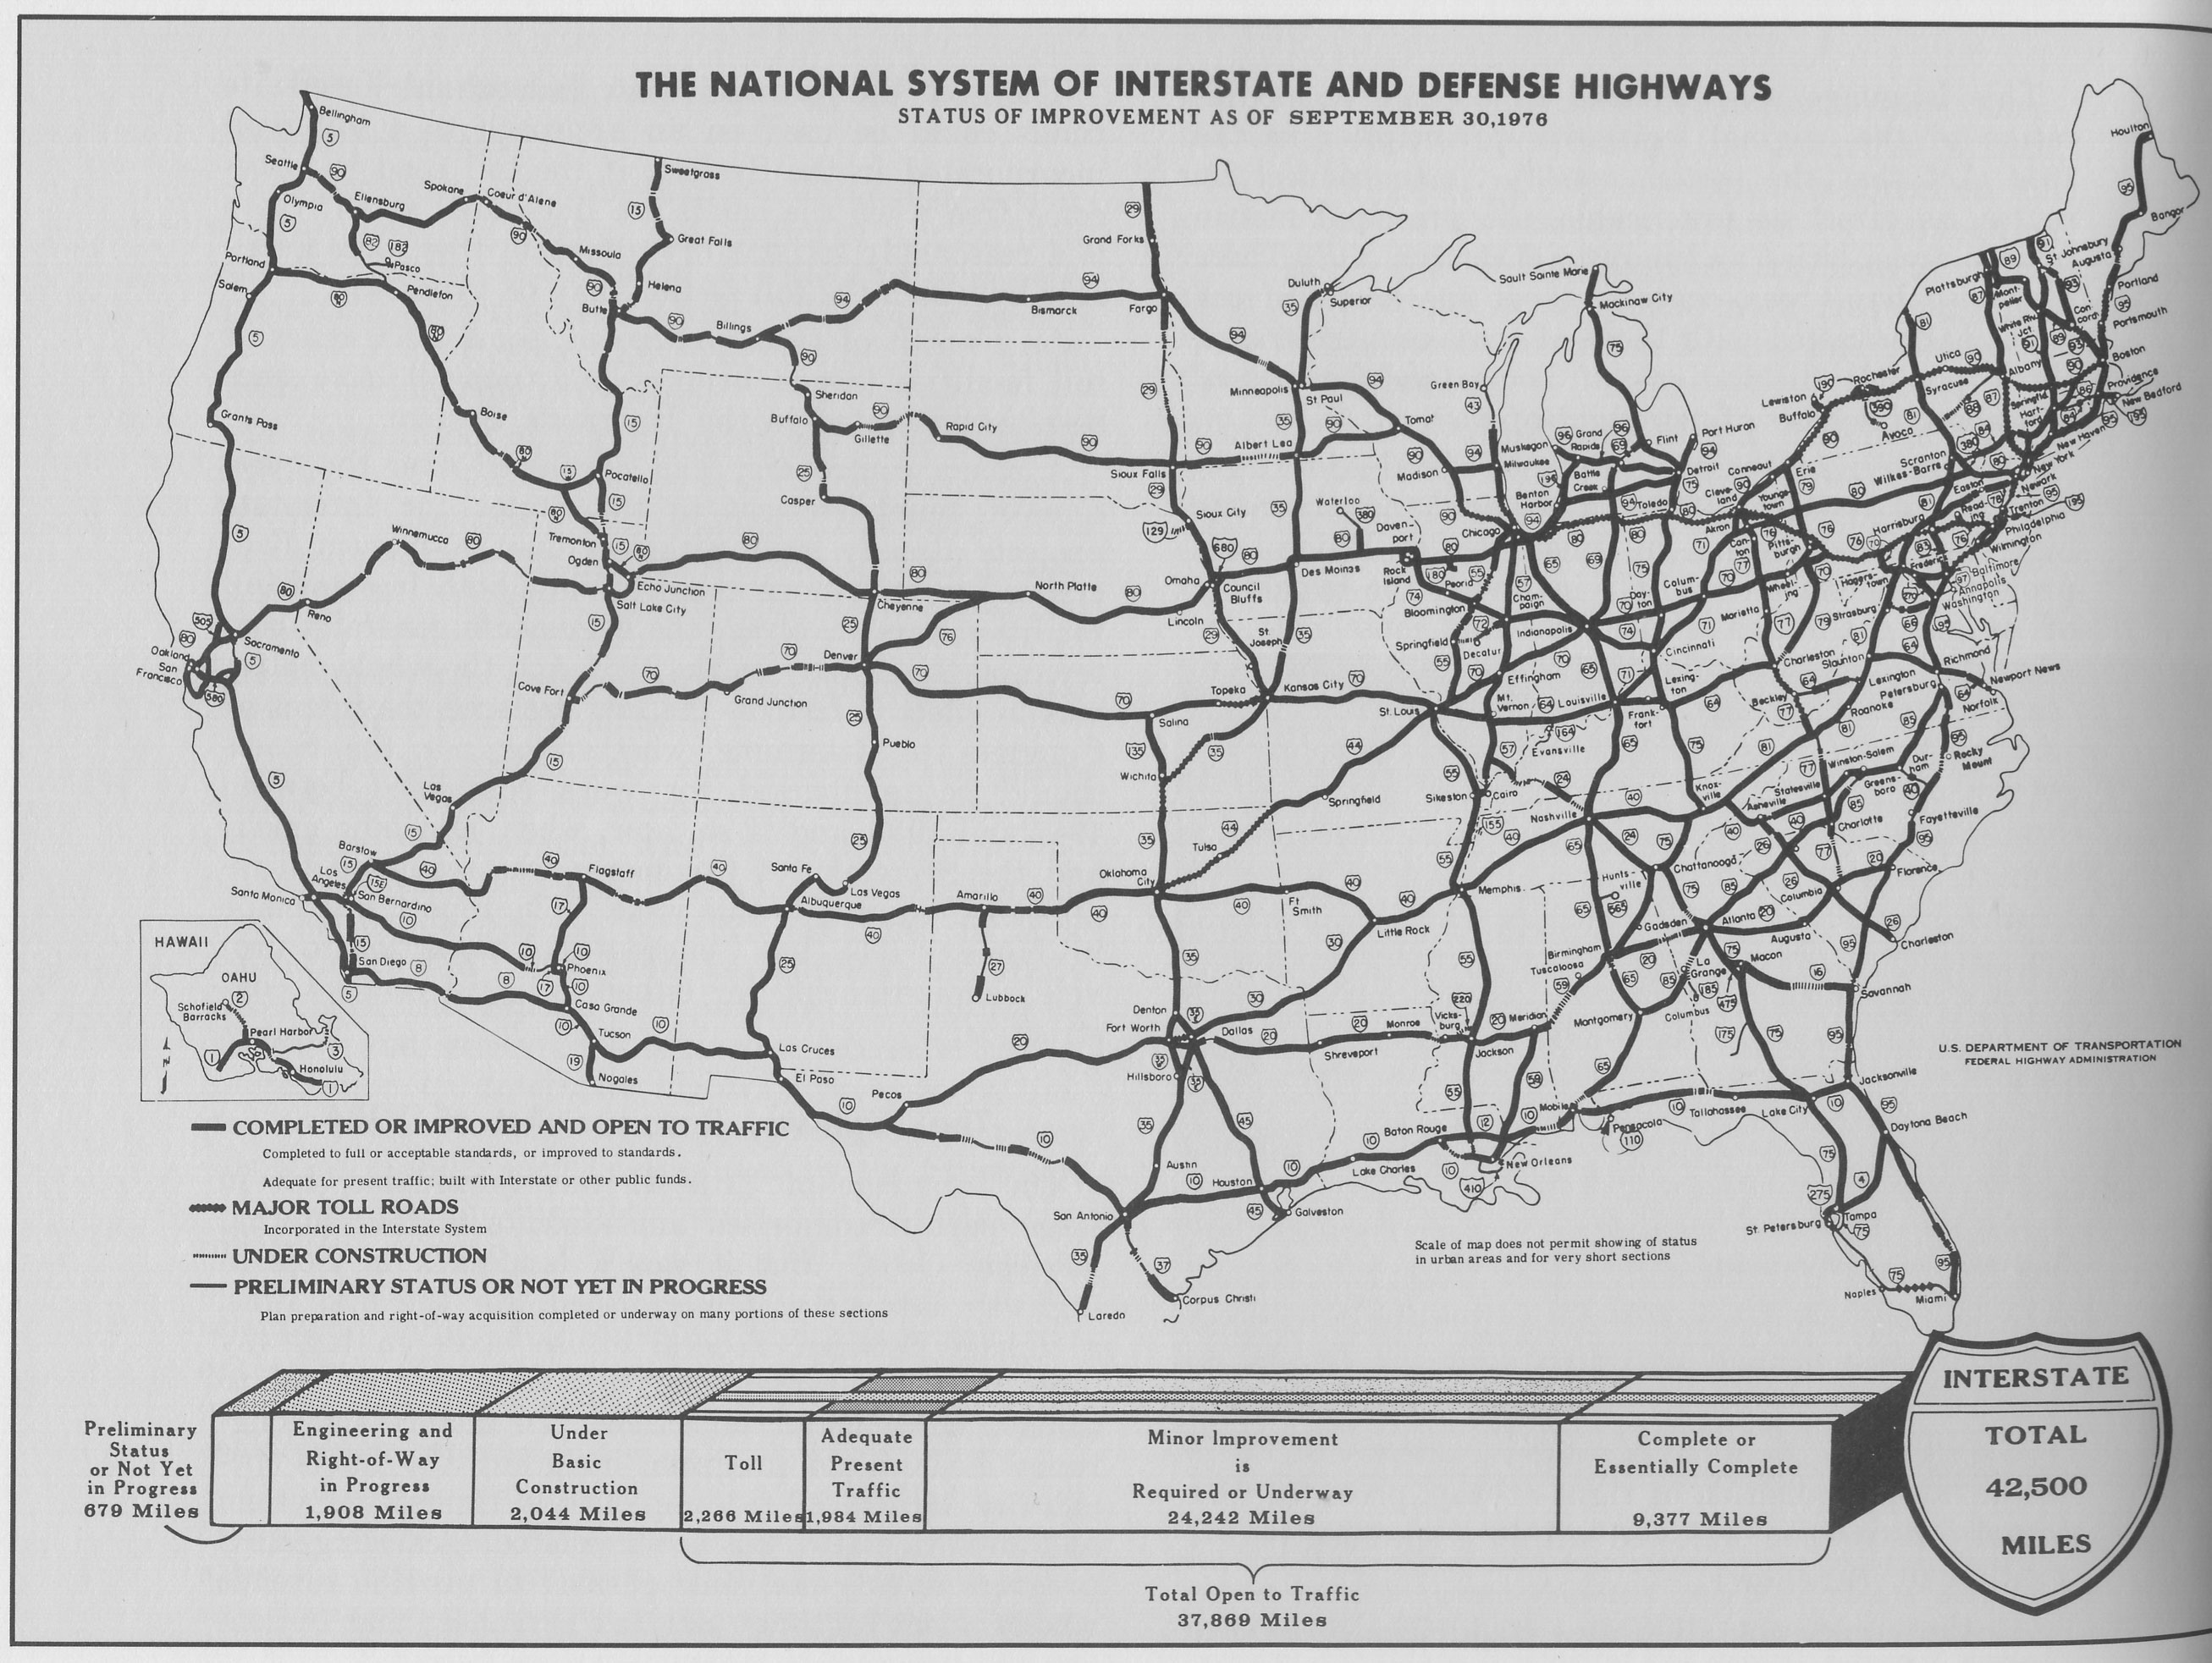 FileInterstate Highway Status September Jpg Wikimedia - Us interstate map states